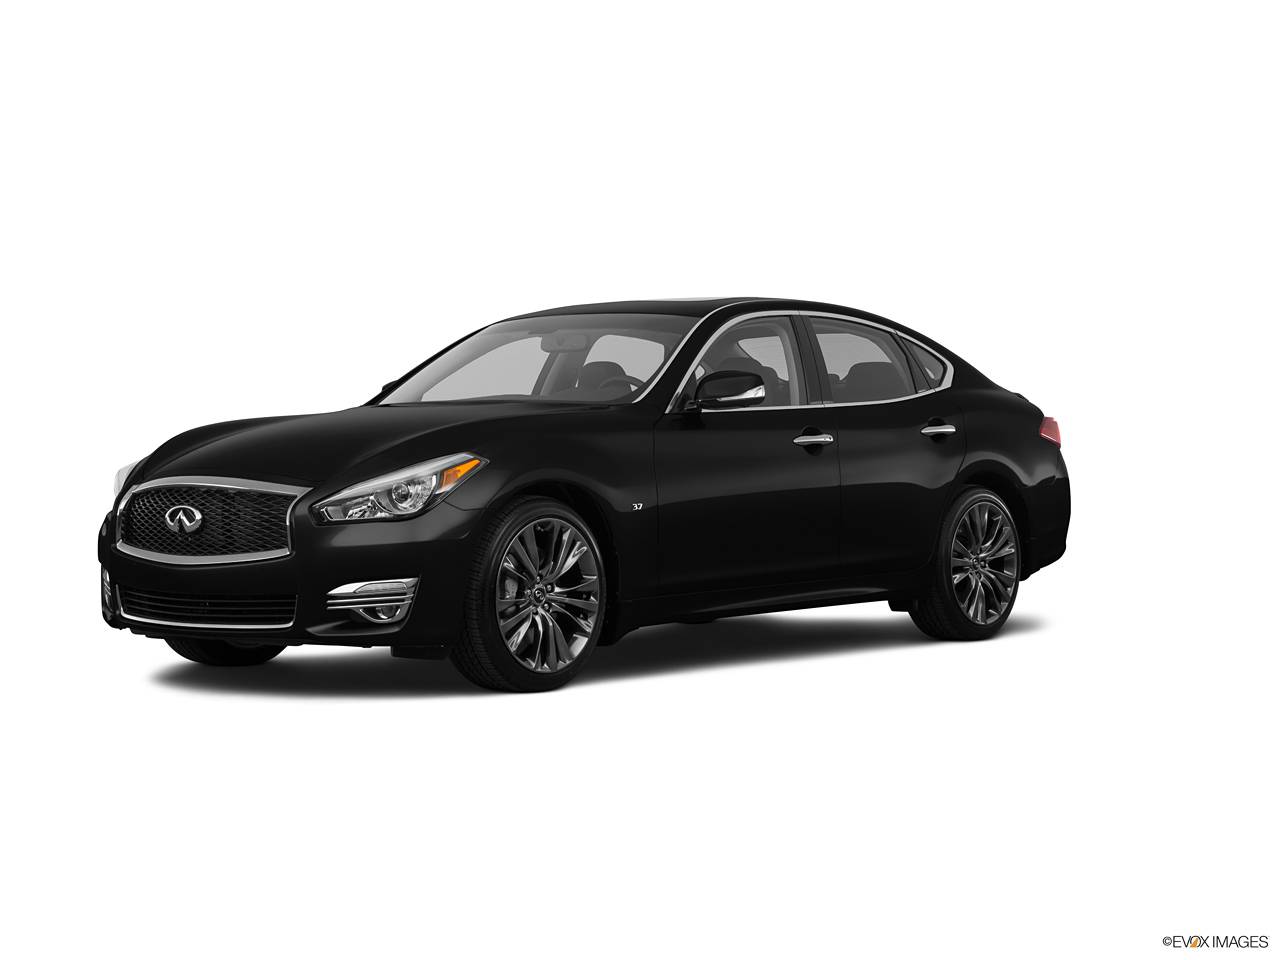 infiniti q70 2017 5 6l luxury in saudi arabia new car prices specs reviews photos yallamotor. Black Bedroom Furniture Sets. Home Design Ideas